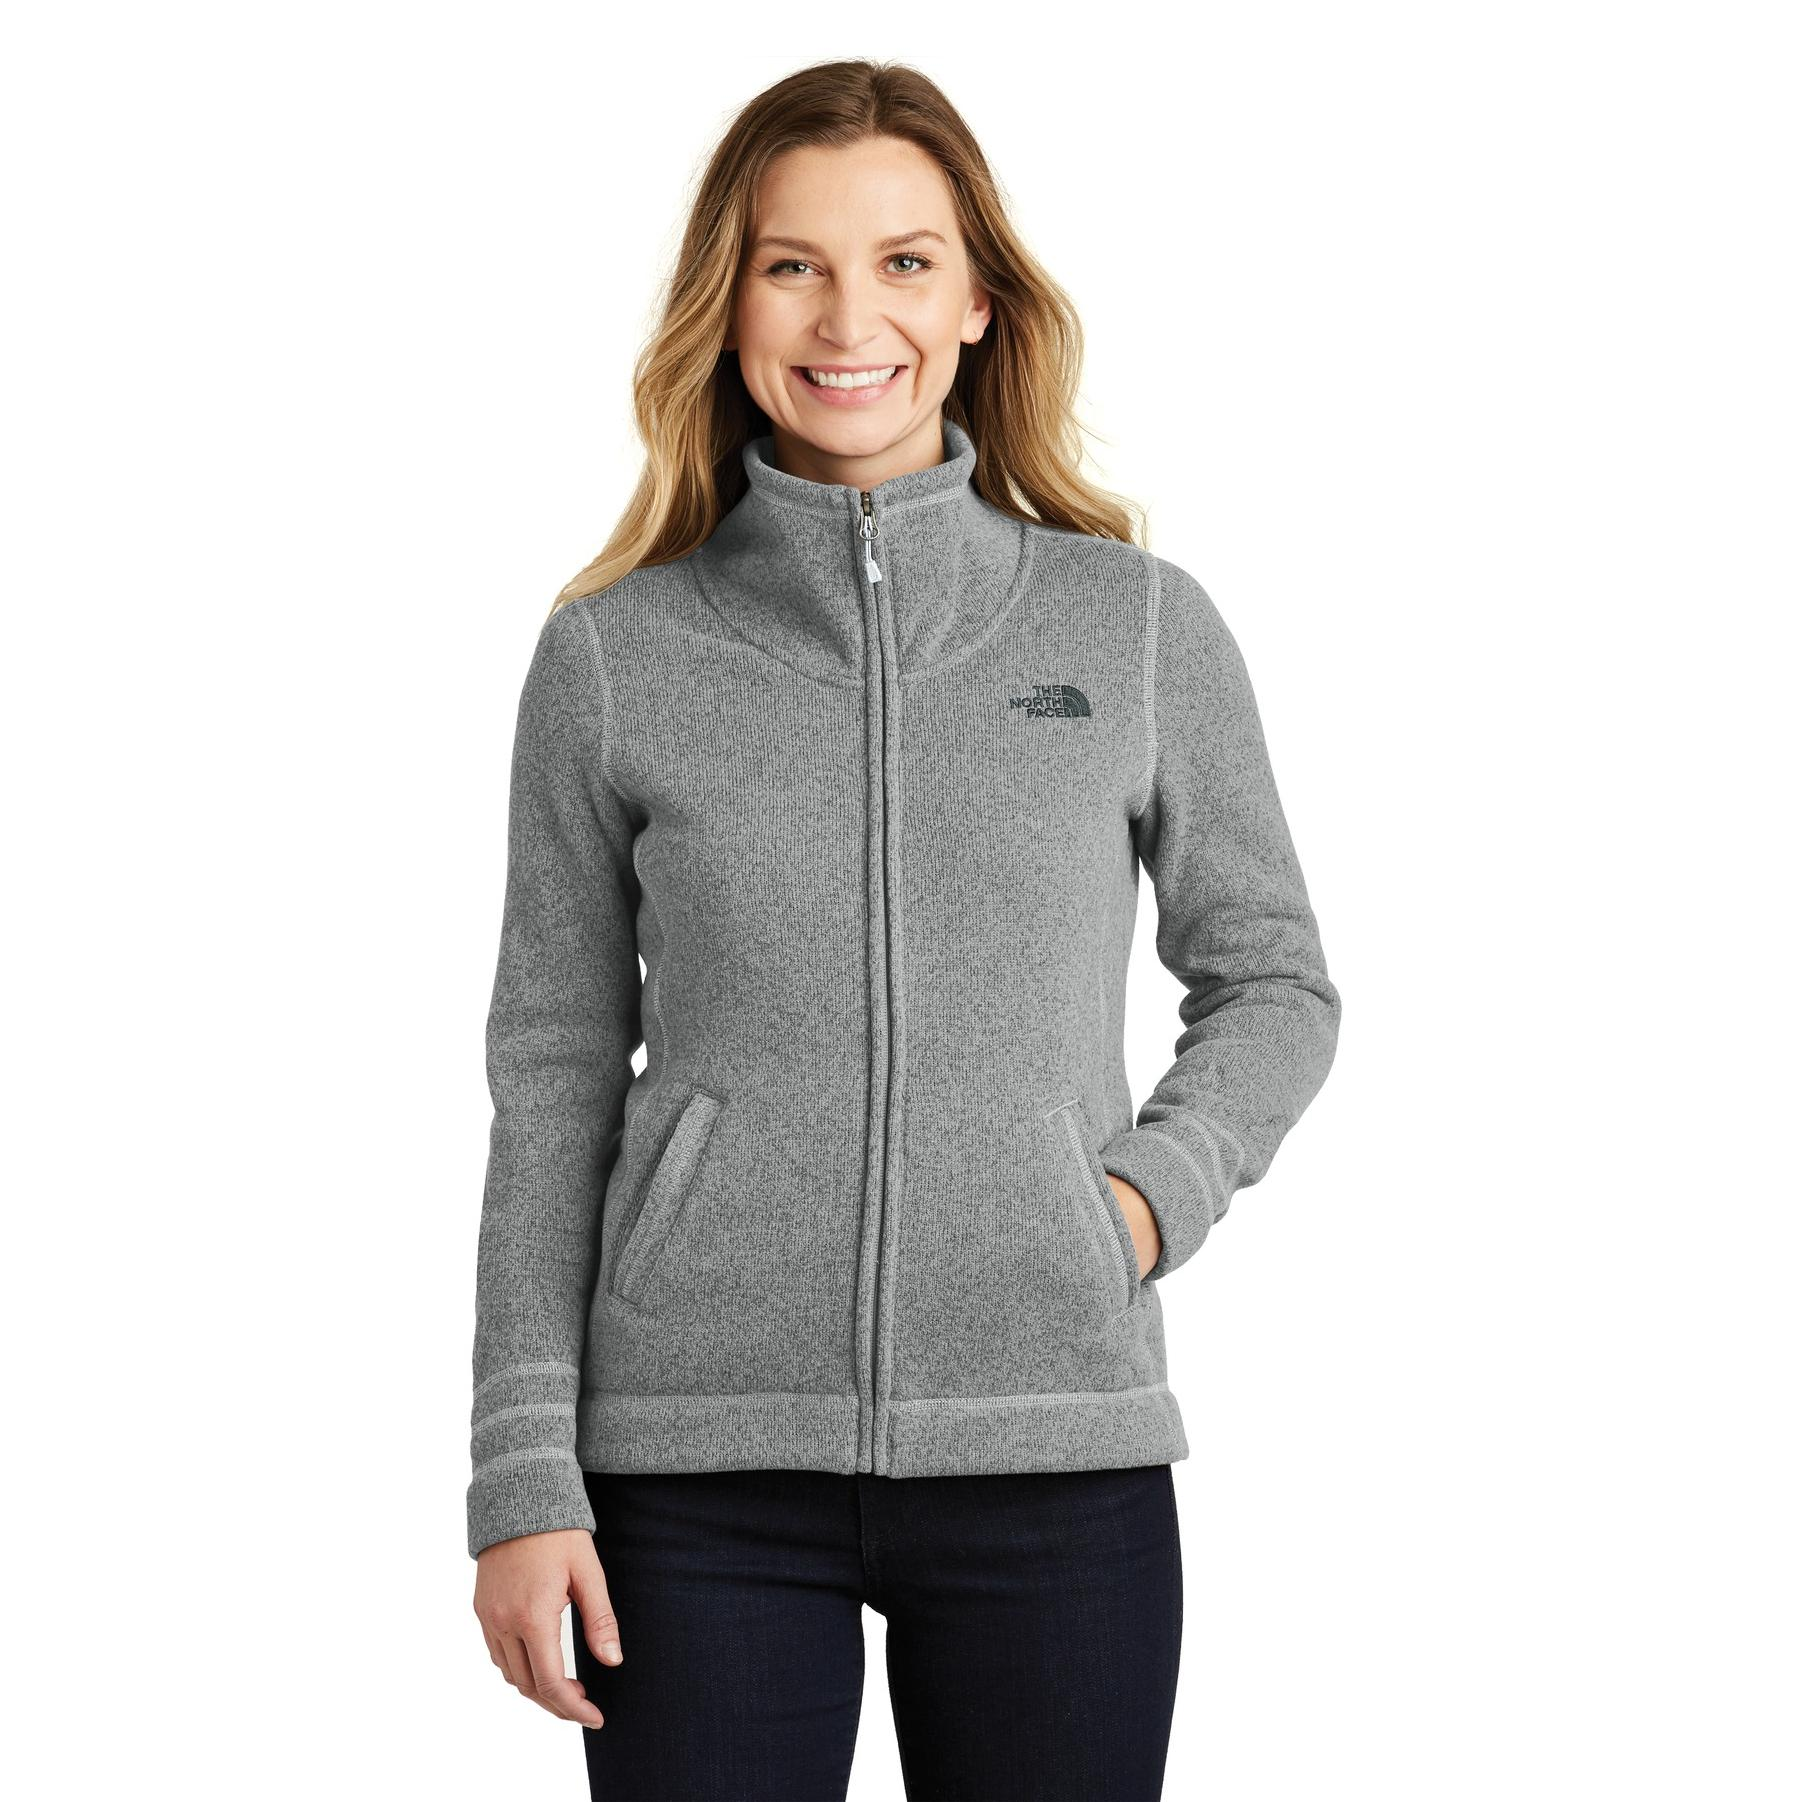 49572dda3 The North Face NF0A3LH8 Ladies Sweater Fleece Jacket - Medium Grey Heather